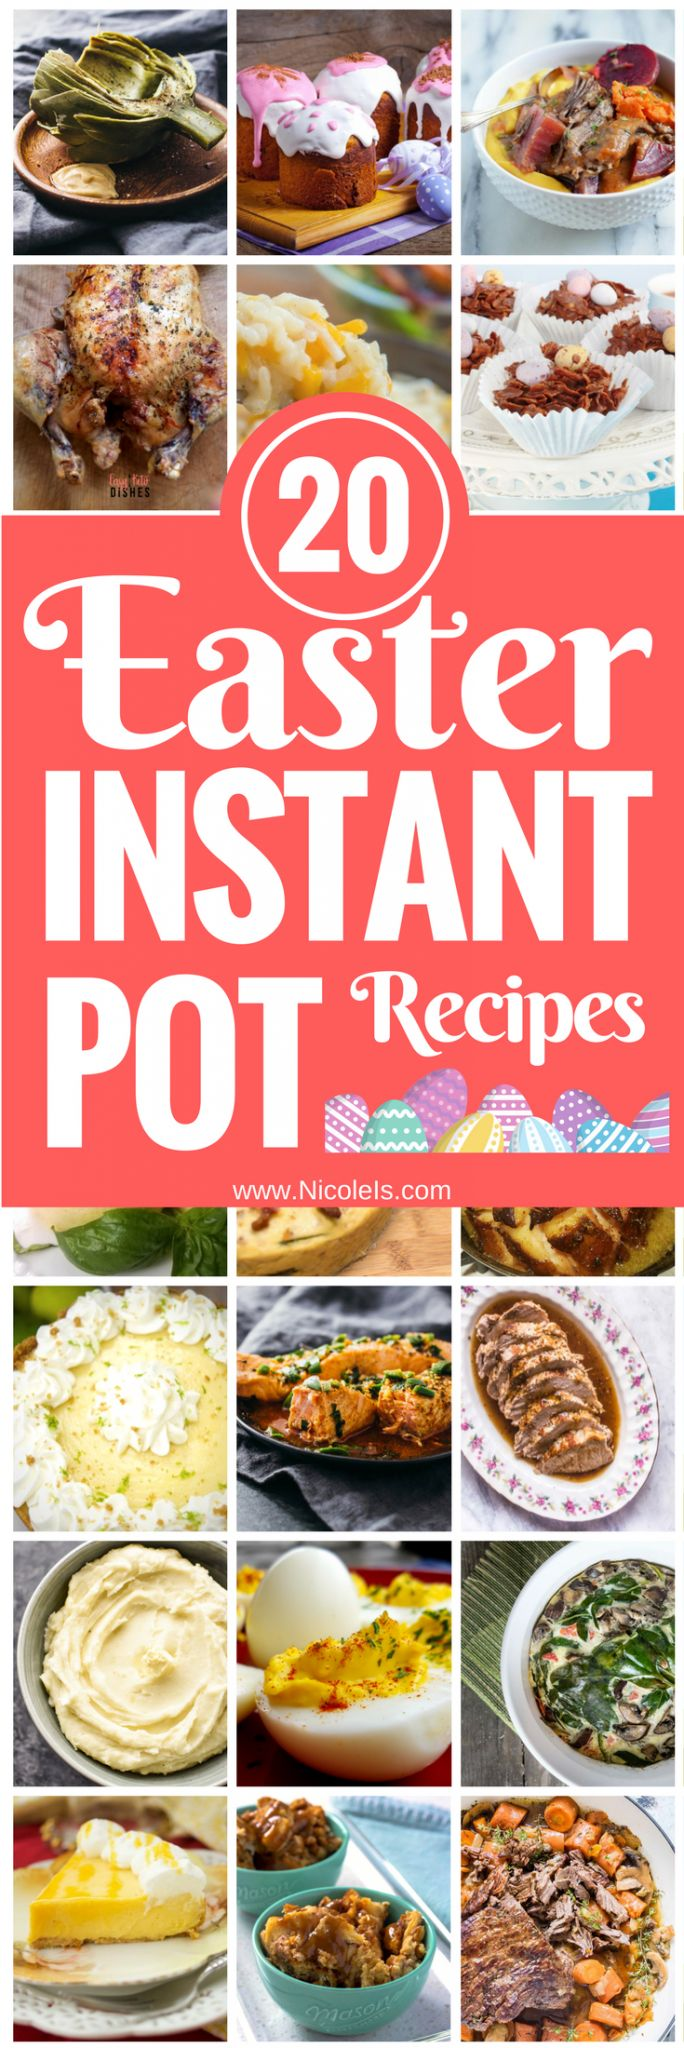 20 Incredible Easter Instant Pot Recipes! www.NicoleIs.com Easter Recipes | Instant Pot Recipes | Appetizer Recipes | Pork Recipes | Seafood Recipes | Beef Recipes | Pot Roast Recipes | Easter Ham Recipes | Easter Desserts | Easter Side Dishes | Vegan Recipes | Vegetarian Recipes | Keto Recipes | Paleo Recipes | Gluten Free Recipes